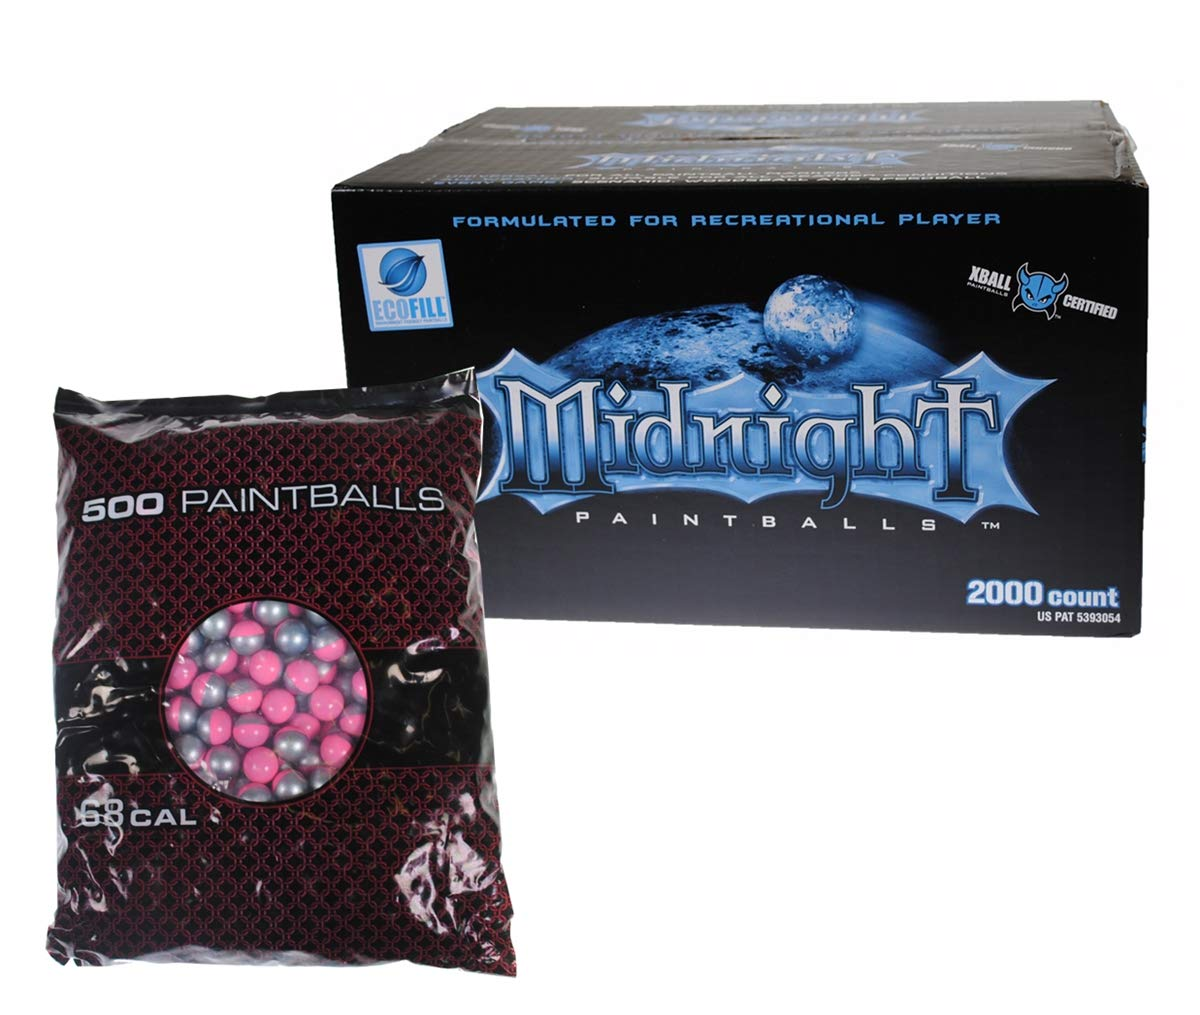 GI Sportz XBALL Certified Midnight Paintballs (2000 Count - Pink/Grey Shell w Aqua Fill) by GI Sportz